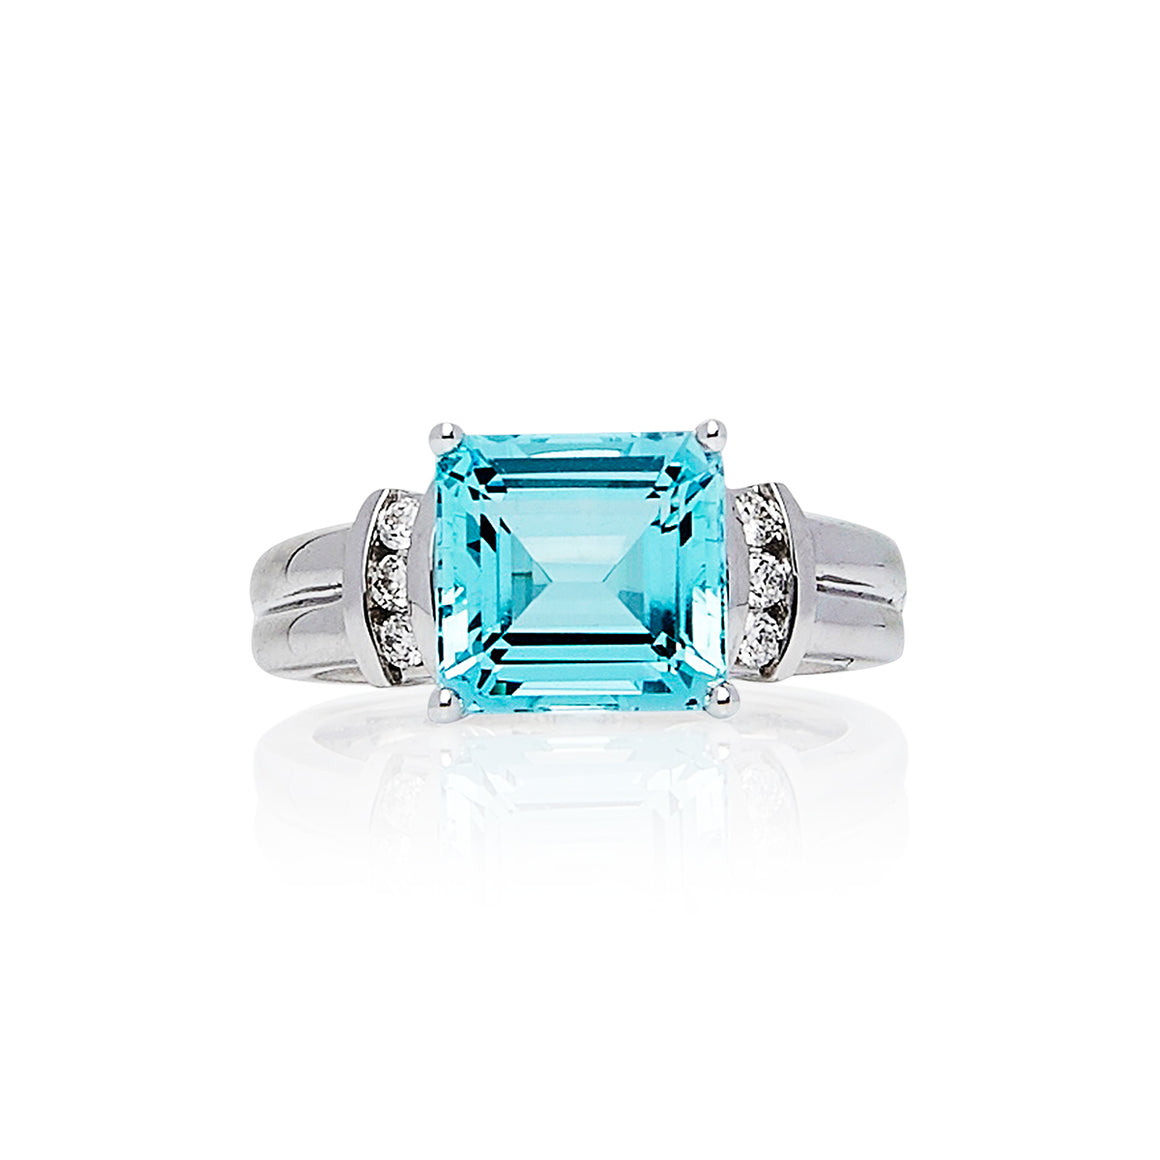 "Aquamarine & Diamond ""Vanessa"" Ring - Gemma Stone  ABN:51 621 127 866"